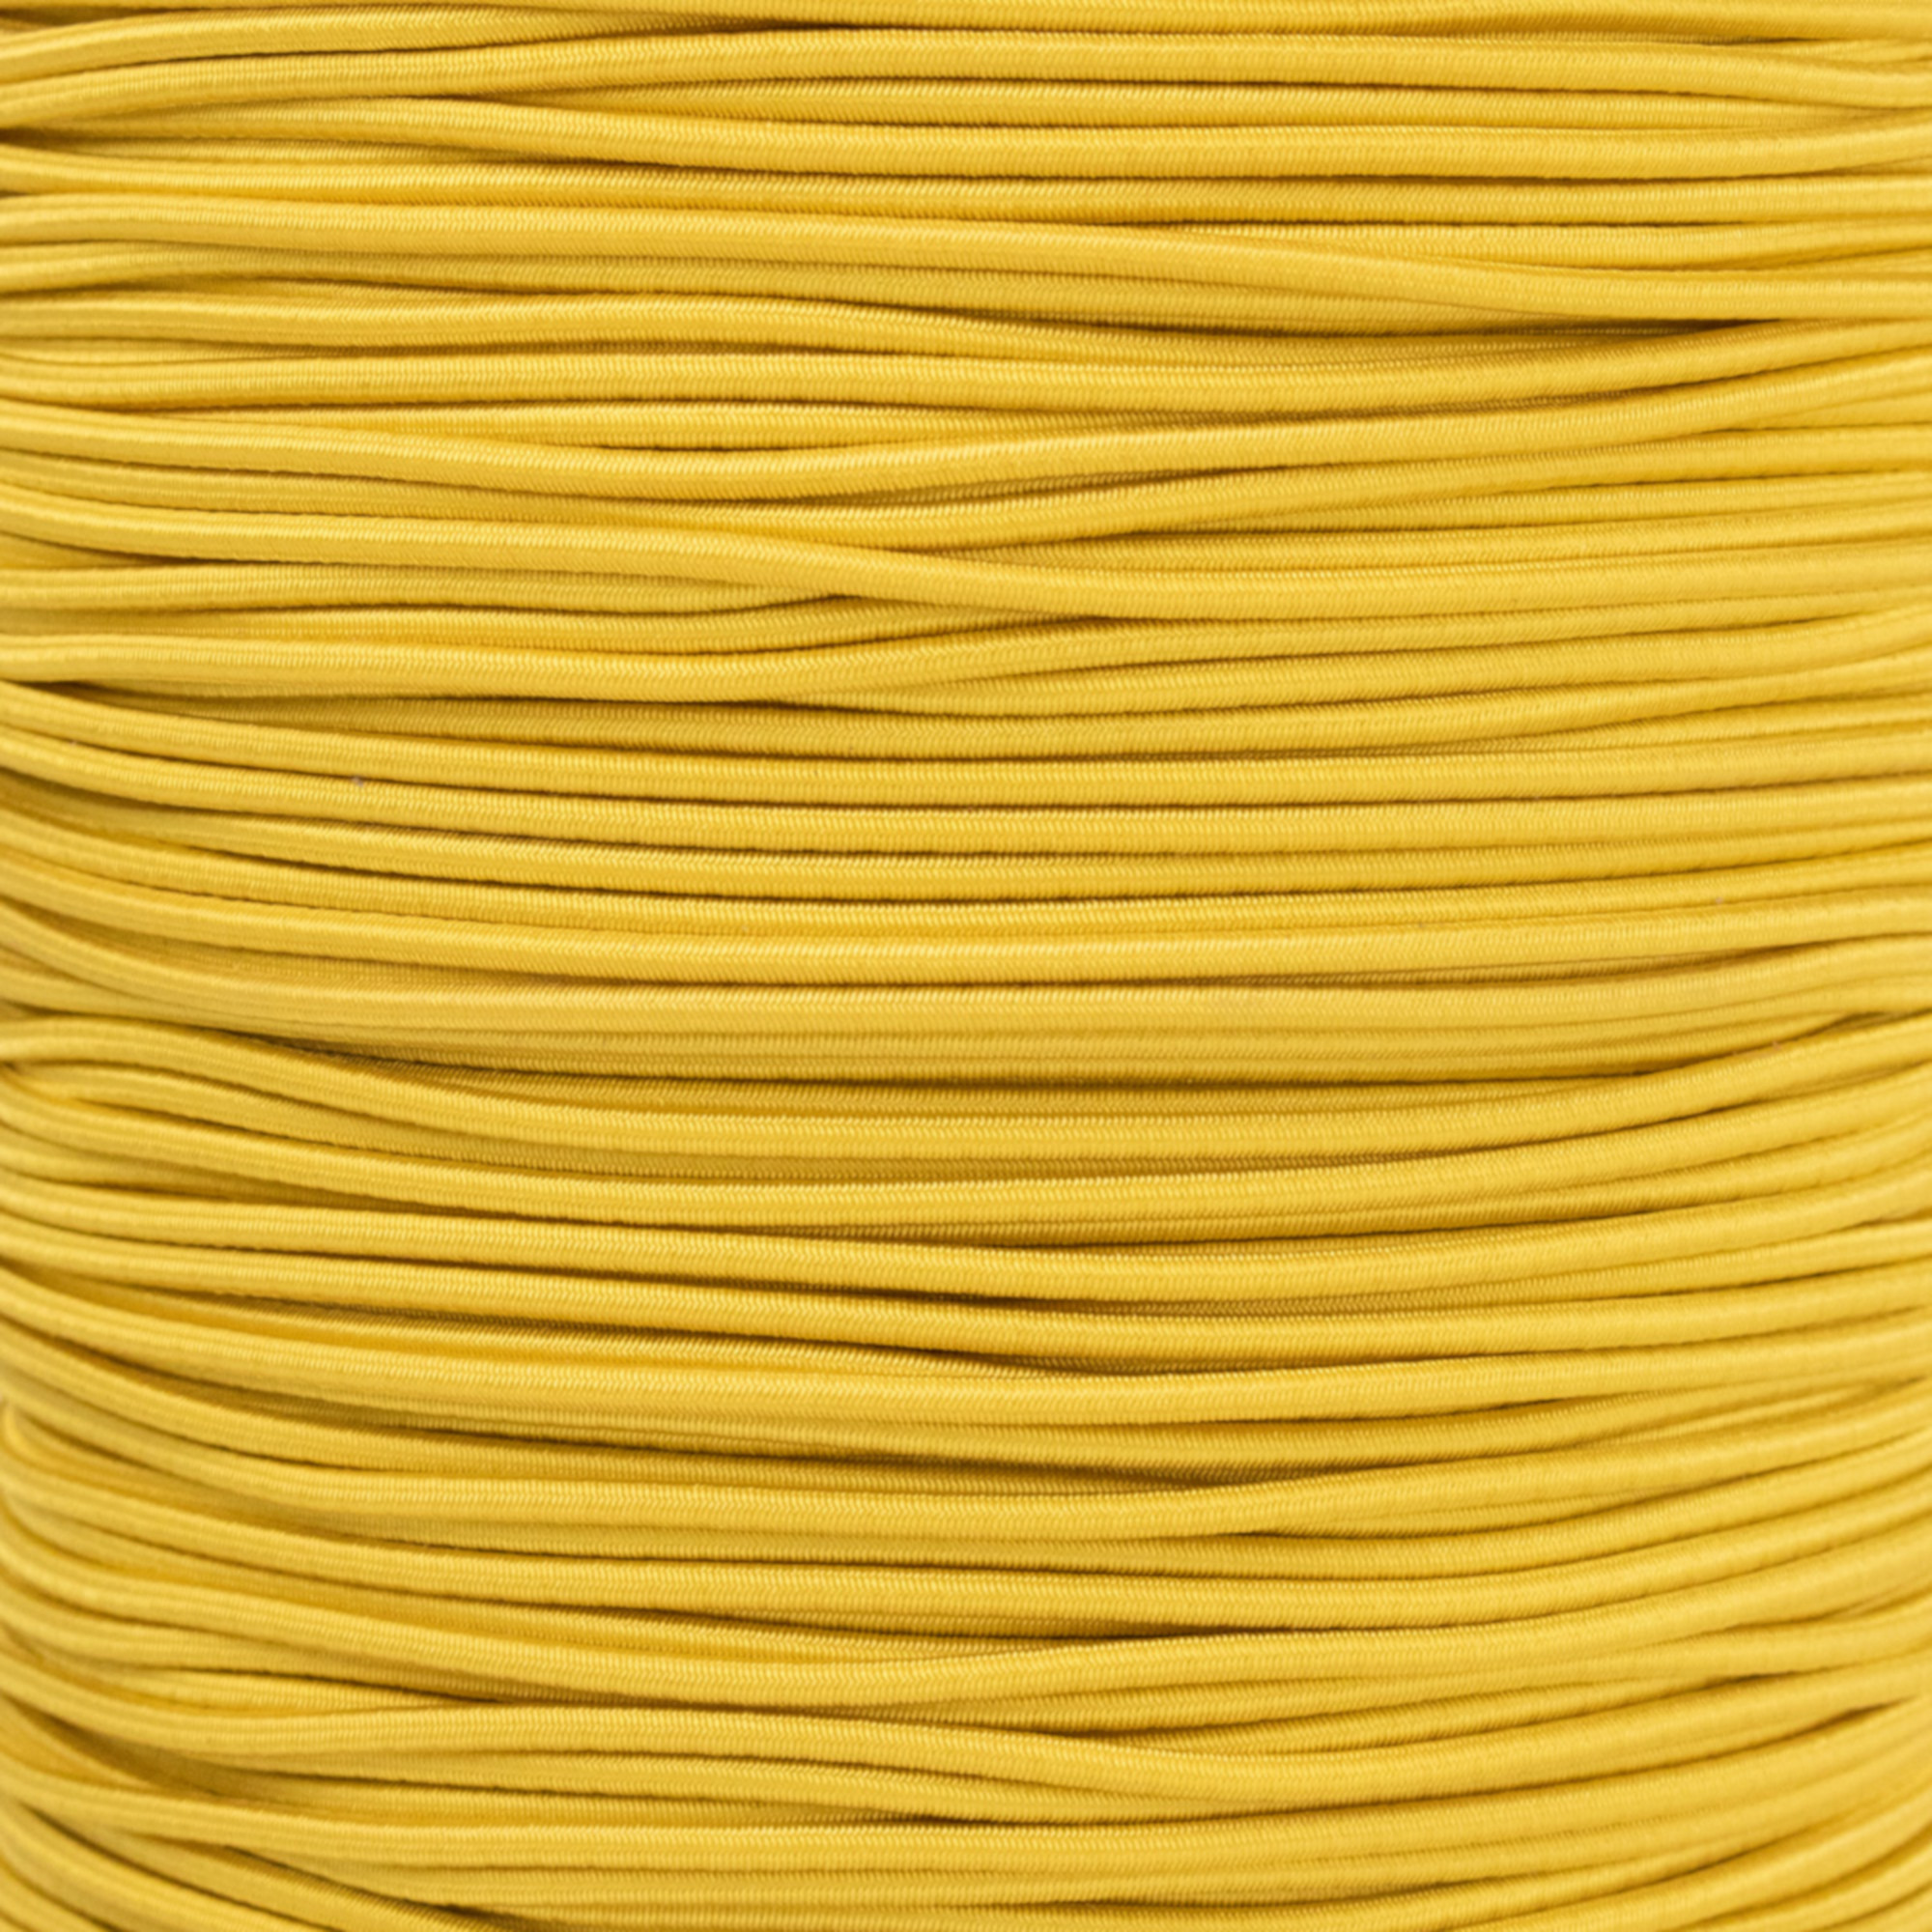 Paracord Planet 2.5mm Elastic Bungee Nylon Shock Cord Crafting Stretch String - Various Colors - 10, 25, 50 and 100 Foot Lengths - Made in USA